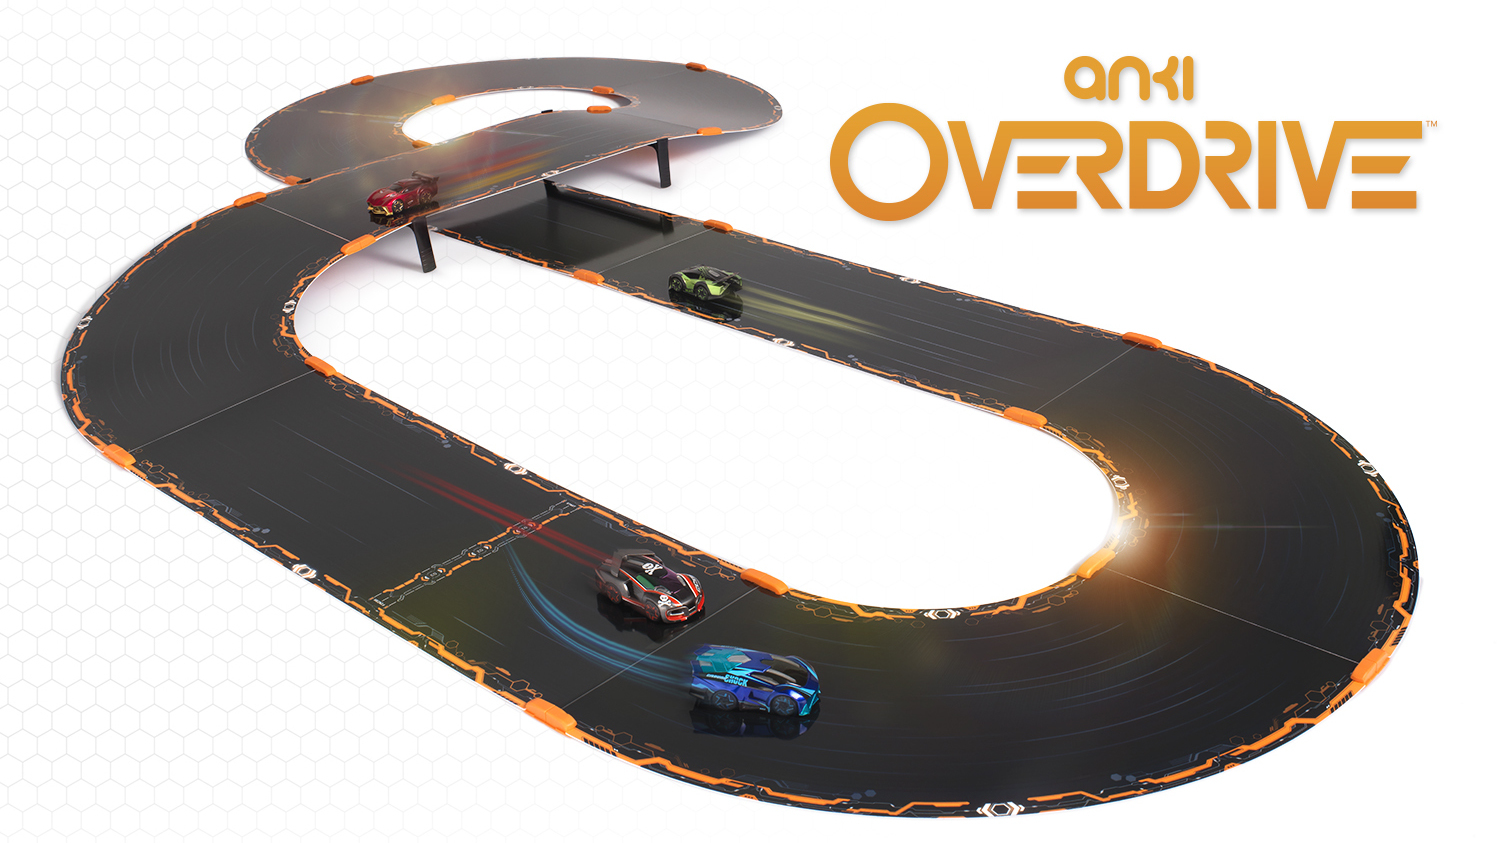 app gesteuerte carrera bahn anki overdrive kommt nach. Black Bedroom Furniture Sets. Home Design Ideas